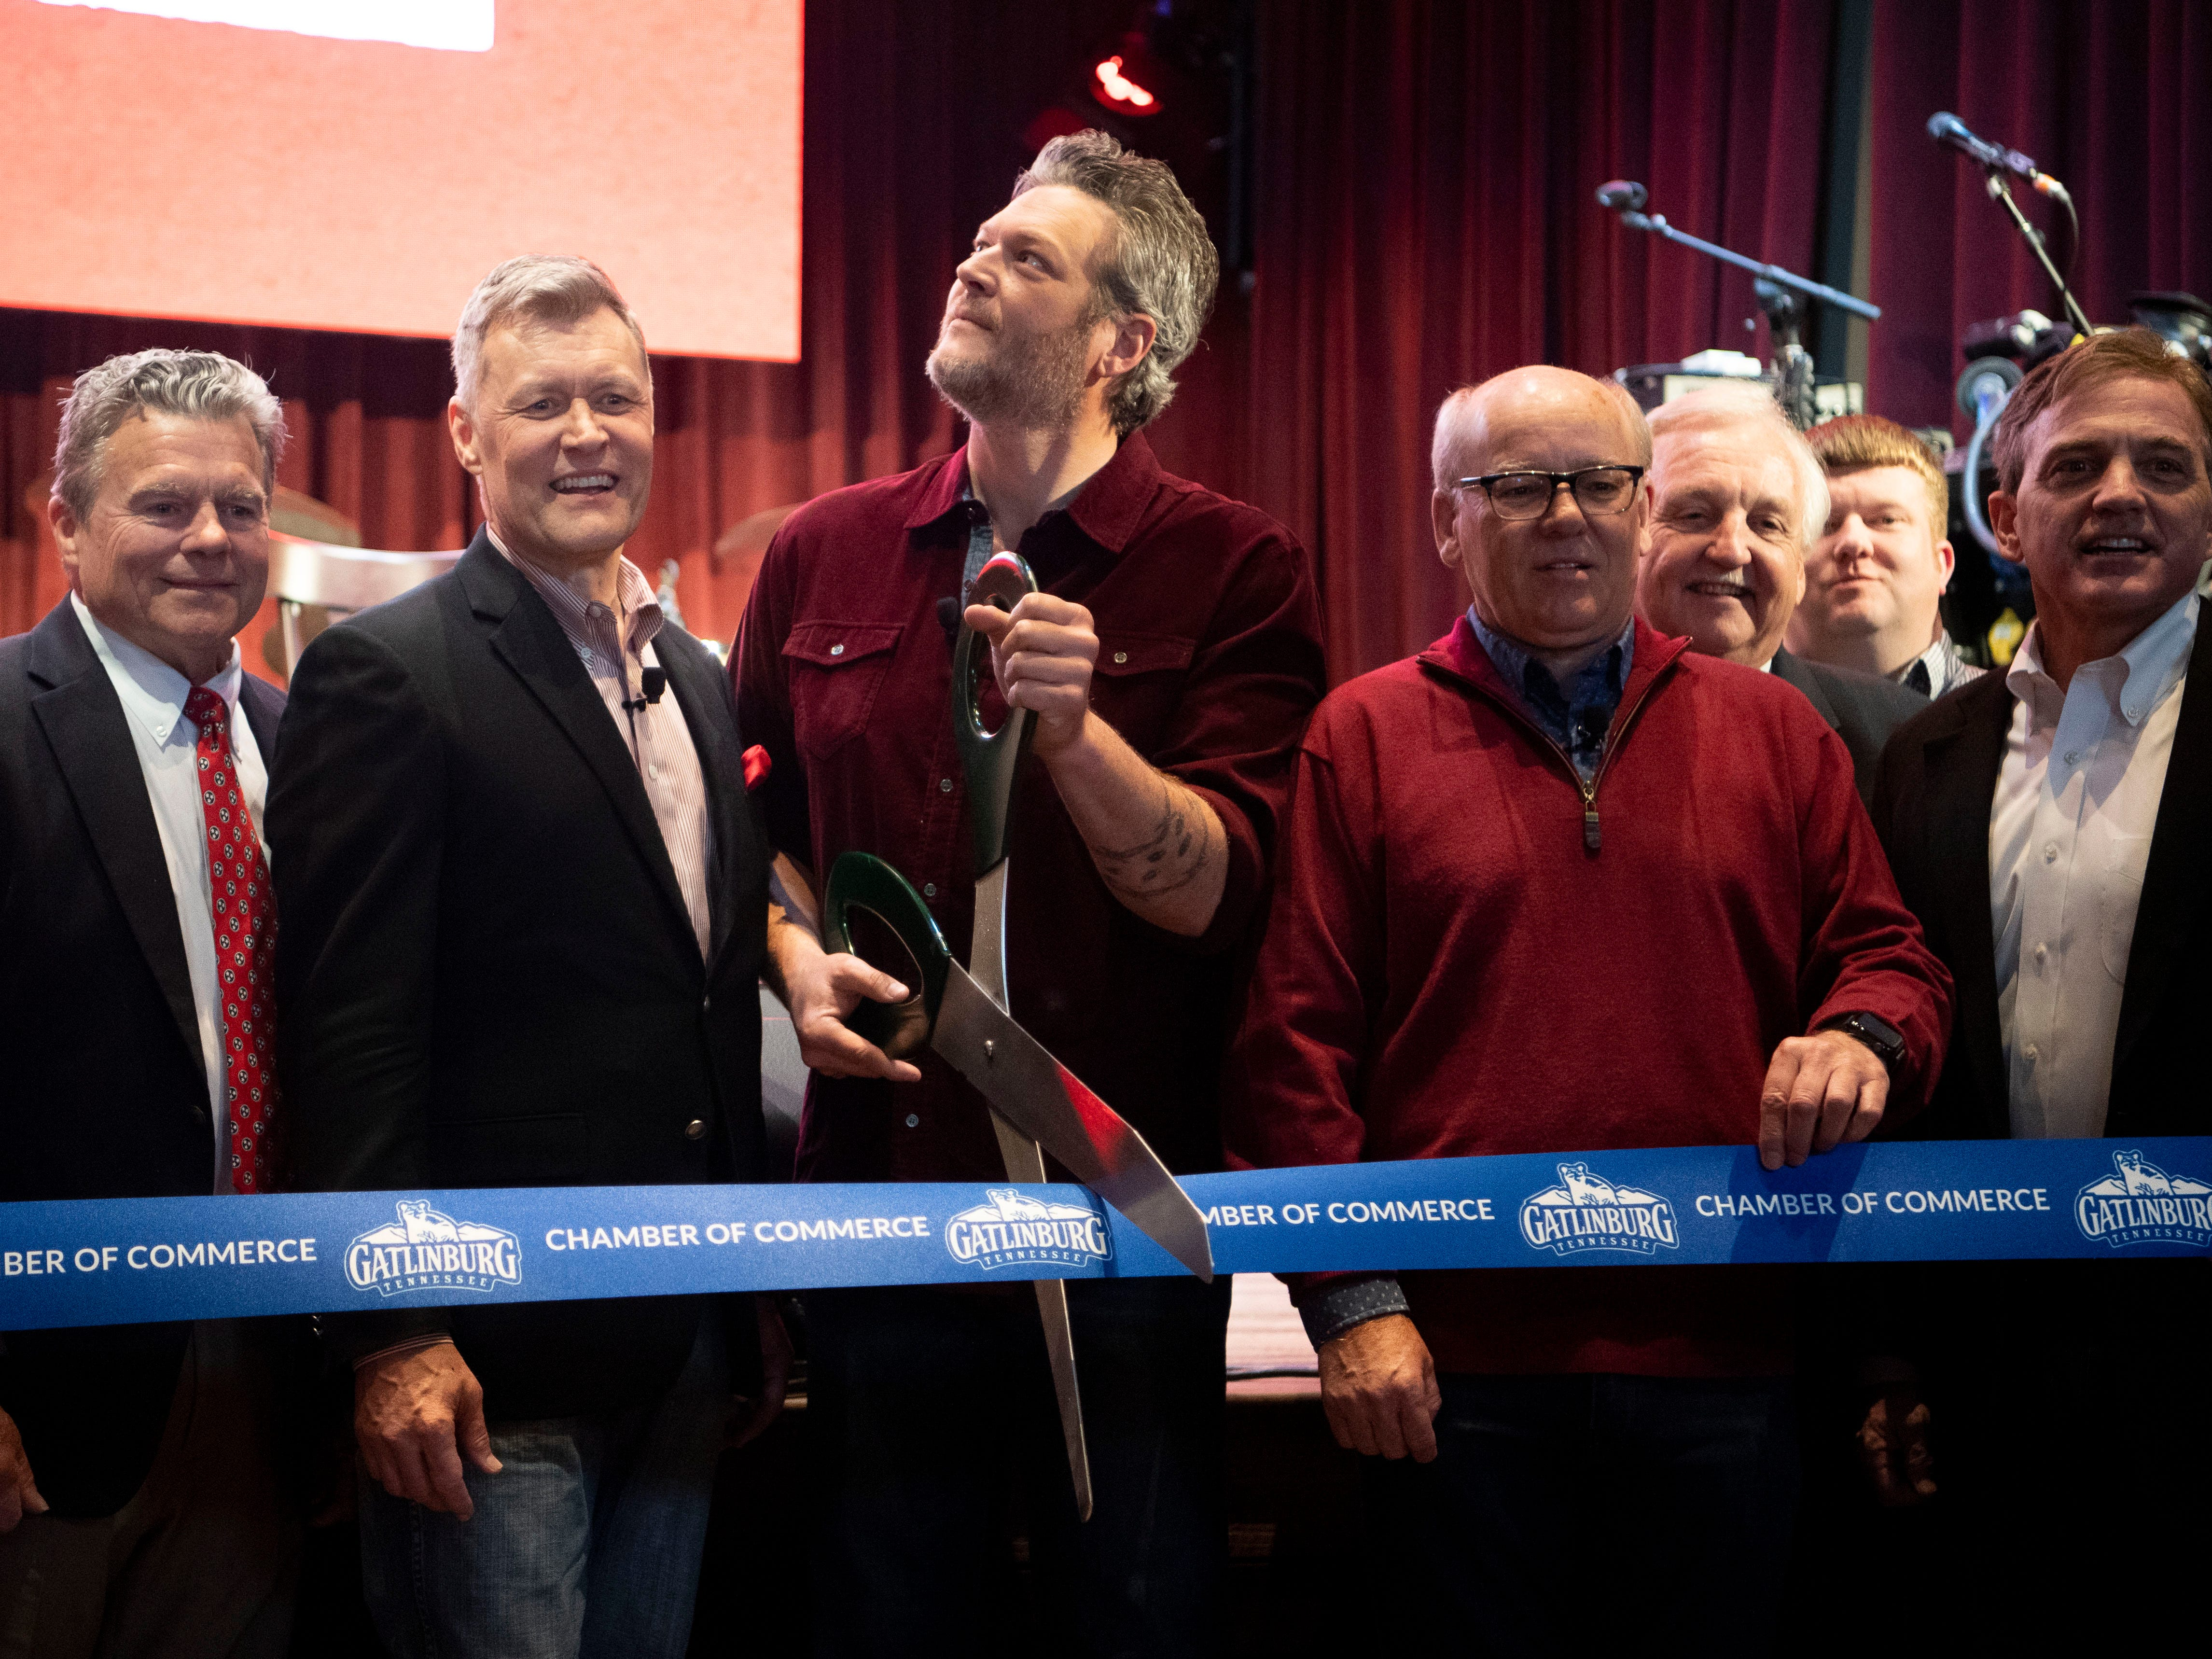 Blake Shelton is the guest of honor as he prepares to cut a ribbon to announce the grand opening of Ole Red Gatlinburg.